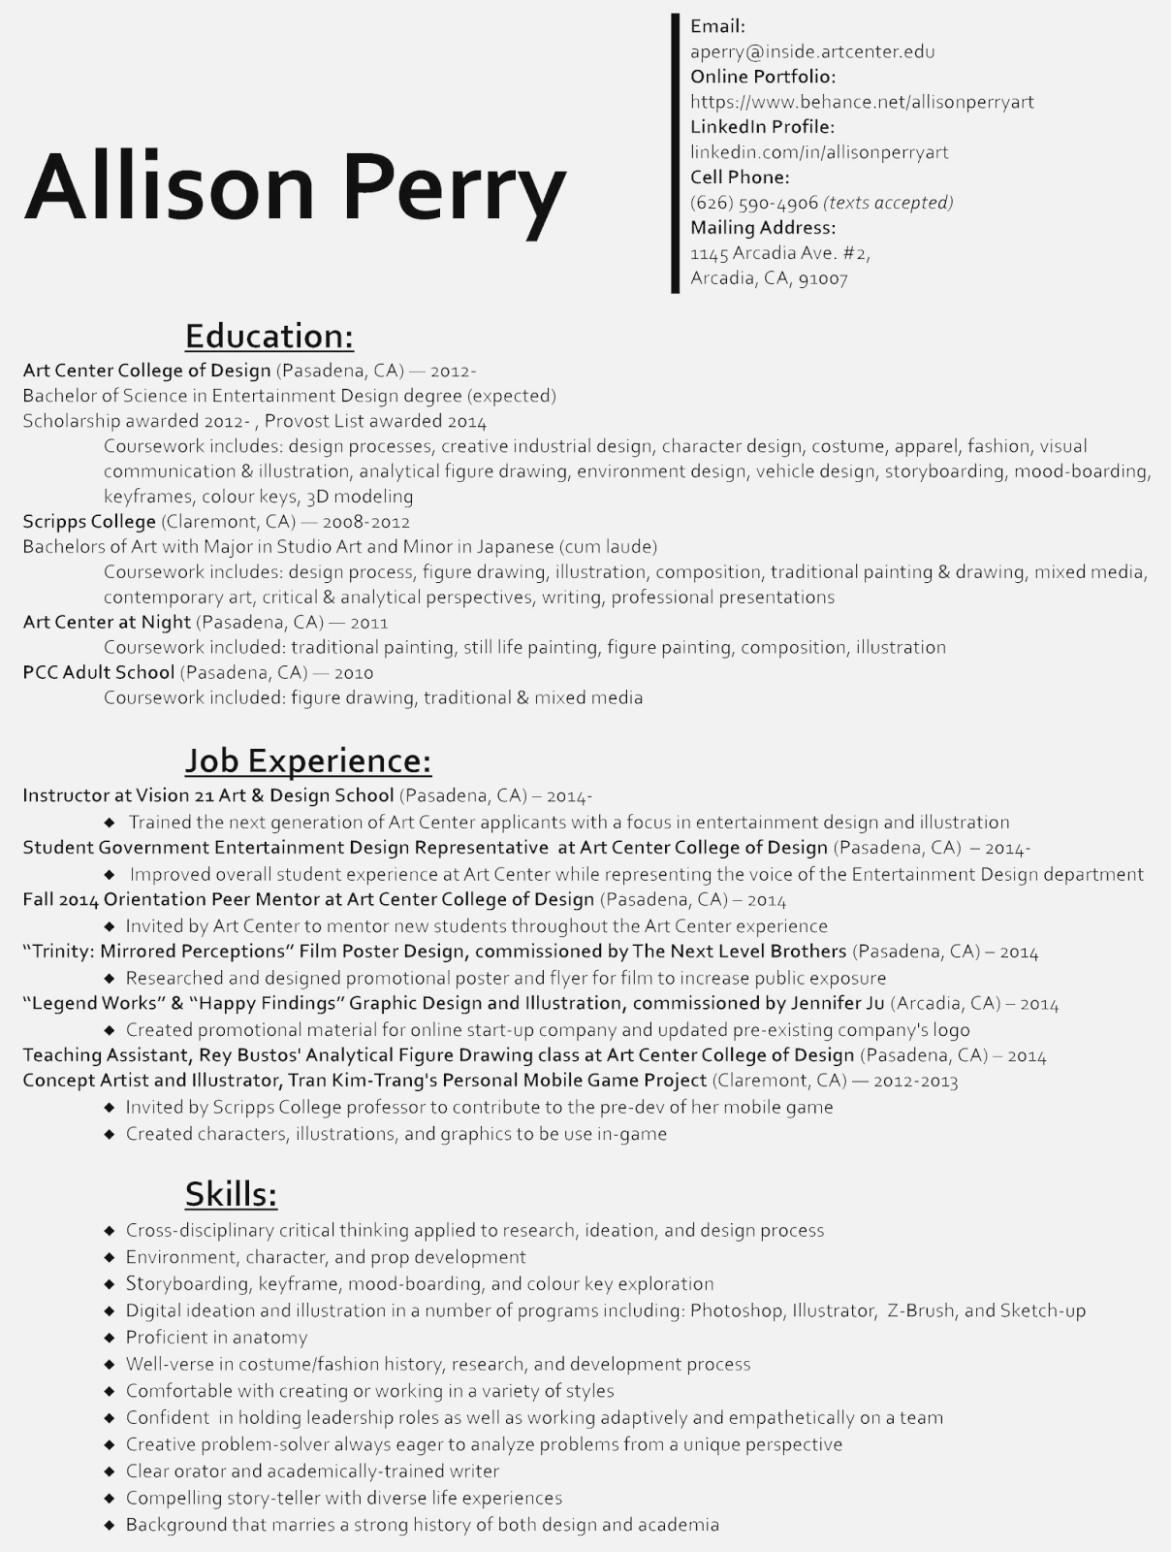 49 Top Dragon Resume Review with Images